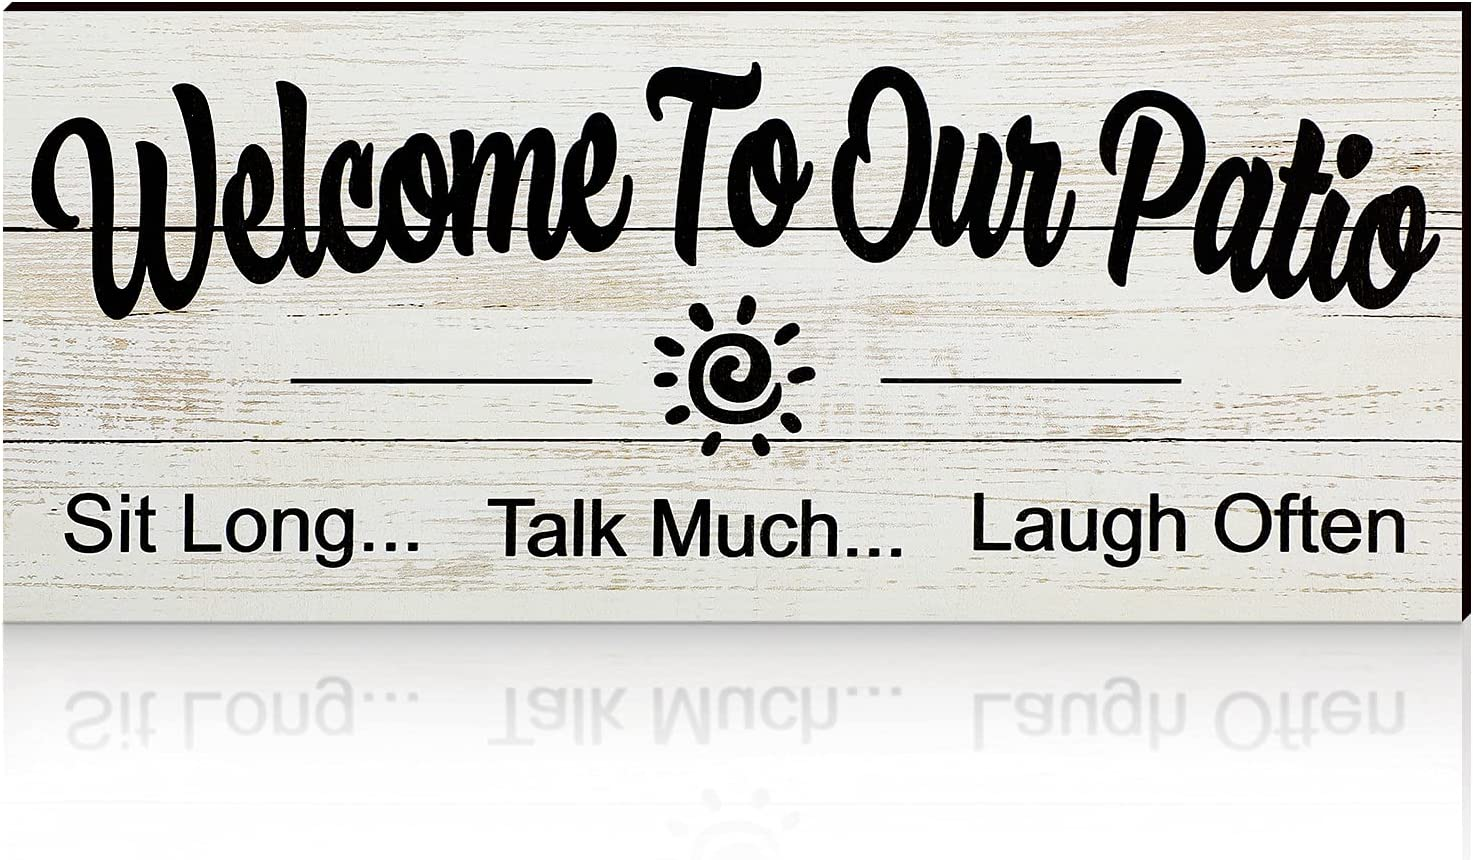 Jetec Welcome to Our Patio Wooden Hanging Sign Vintage Style Wall Sign Hanging Rustic Farm Wood Decorative Funny Home Patio Wall Decor for Indoor, Outdoor, Front Door and Garden Decor